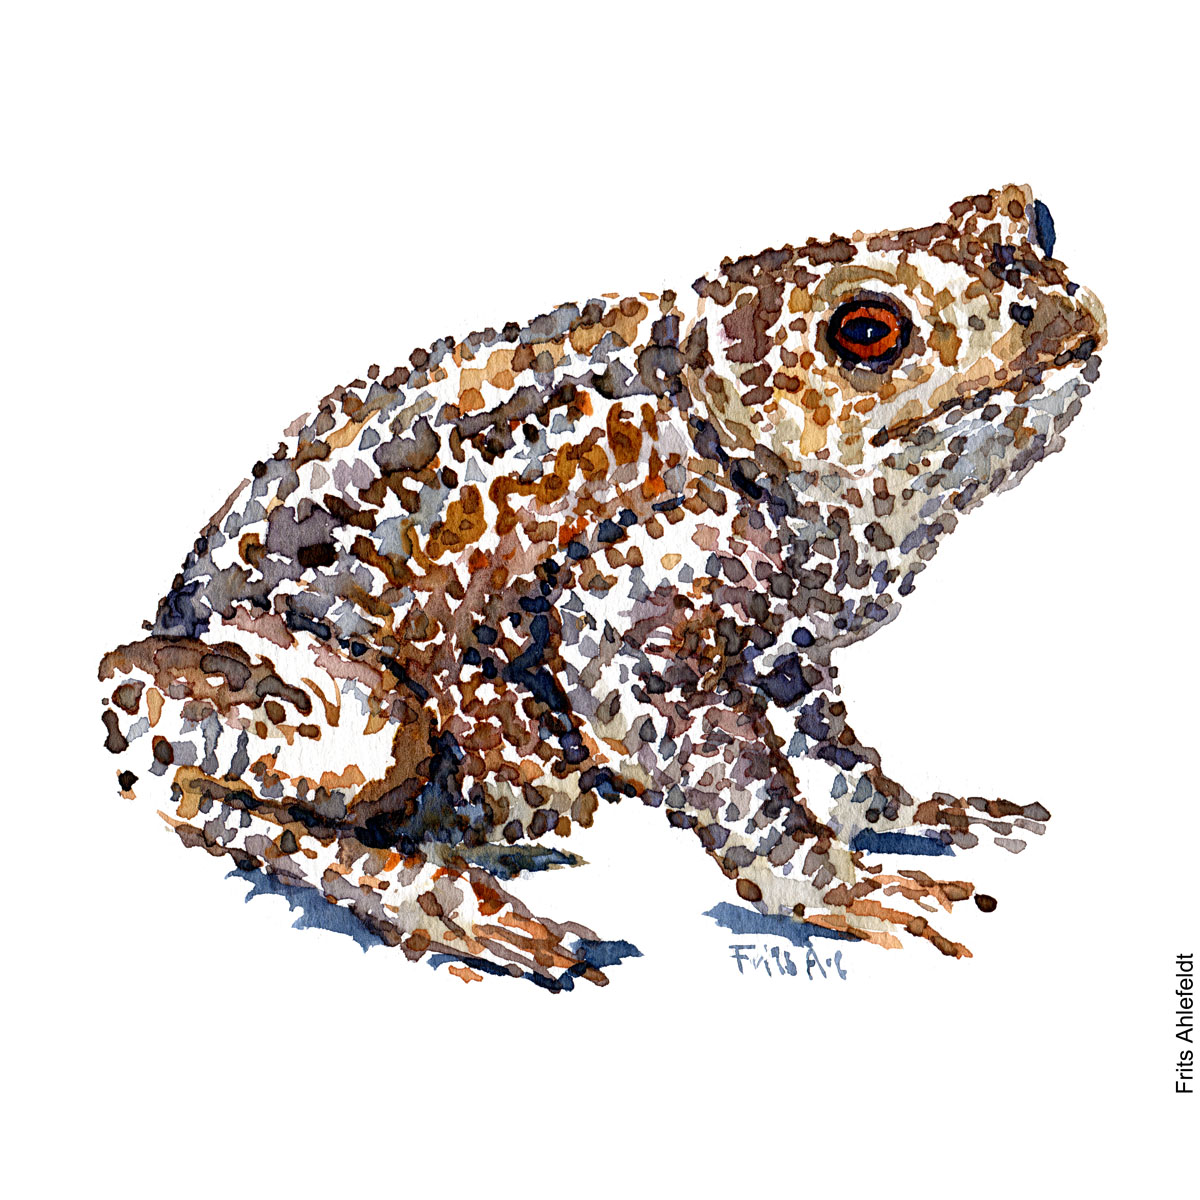 Common toad. watercolor illustration handmade by Frits Ahlefeldt